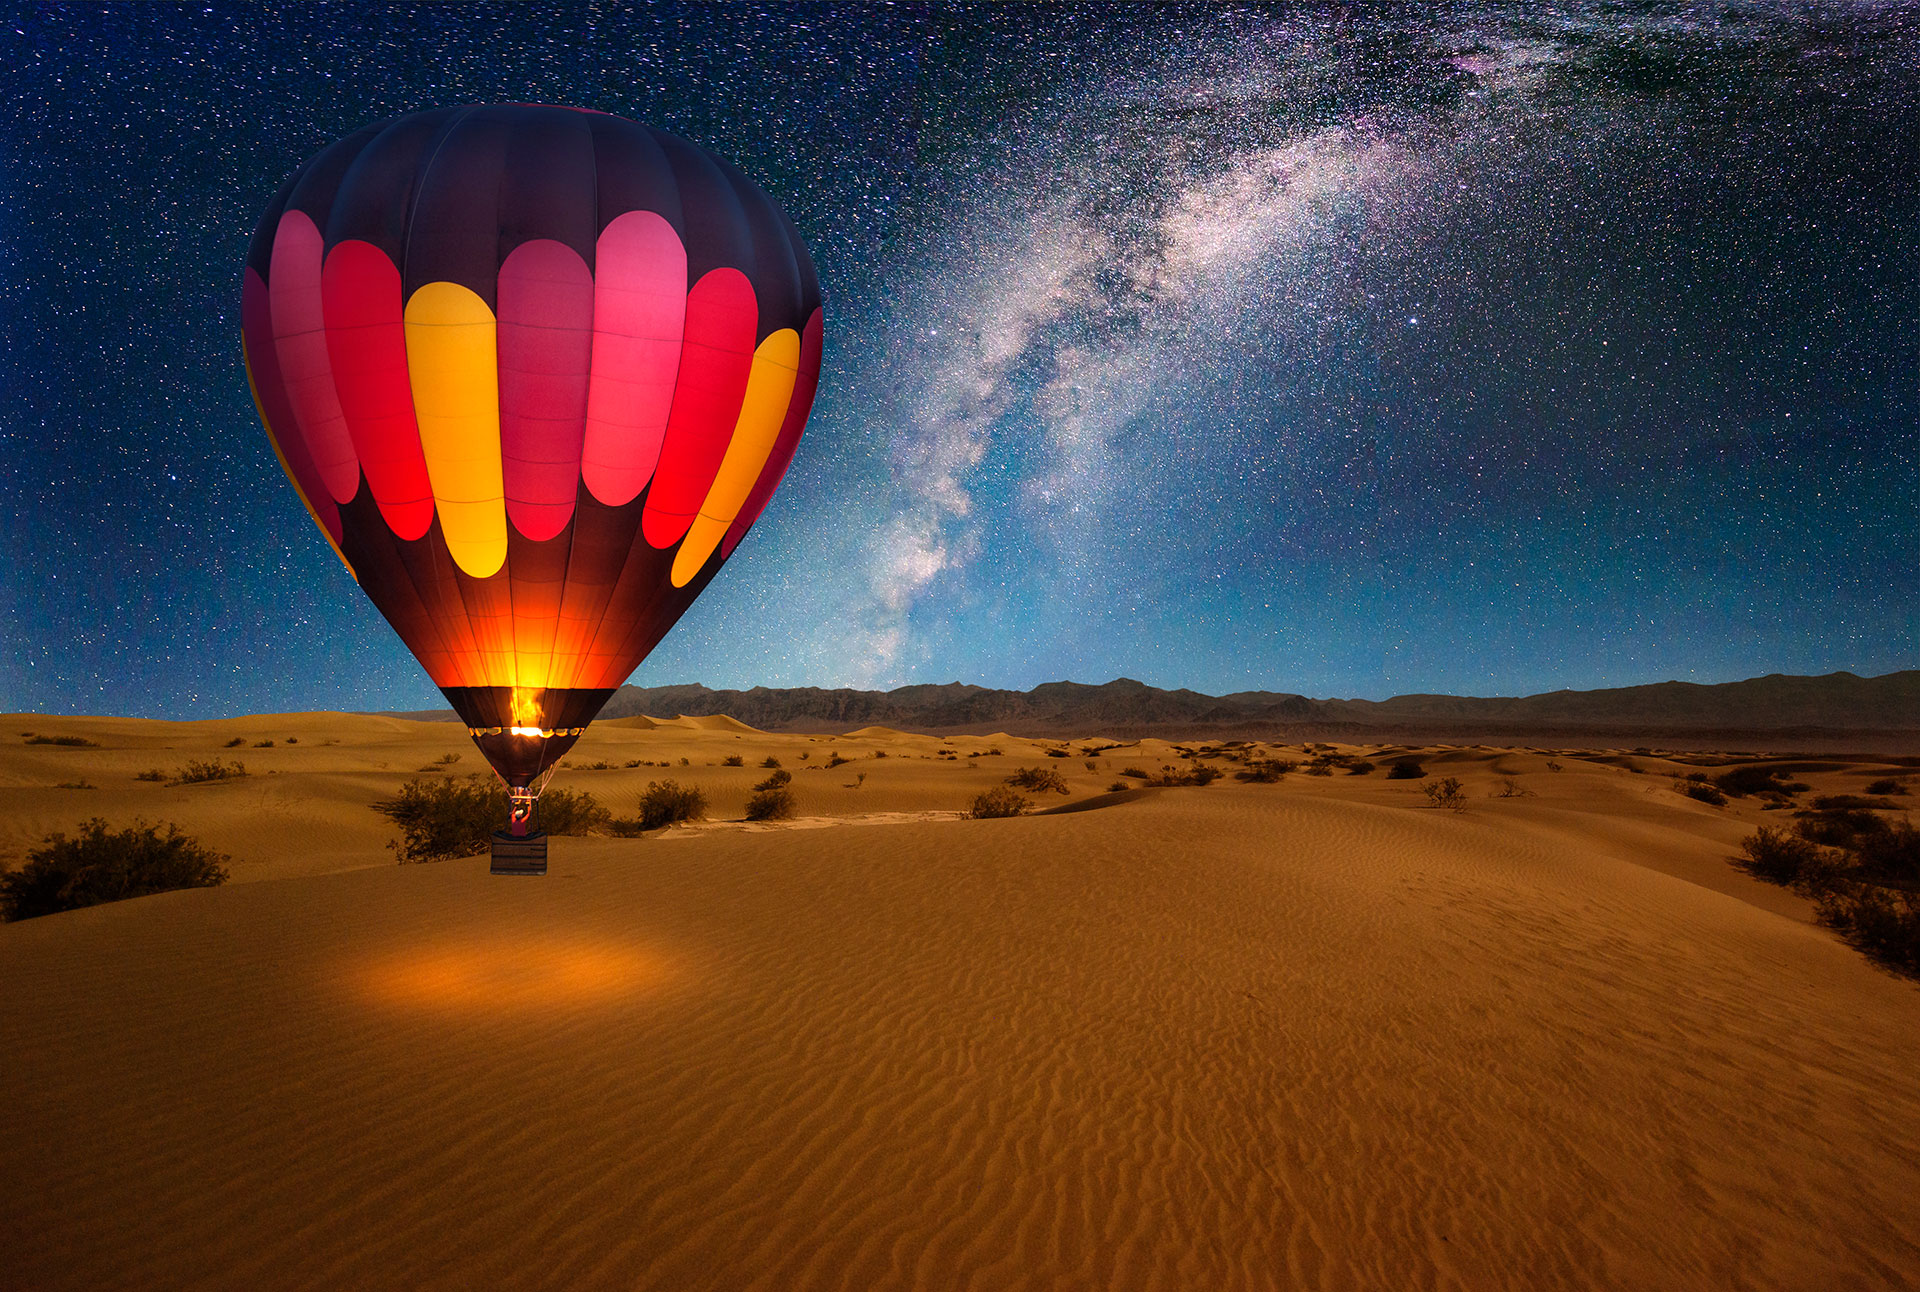 Hot Air Balloon in Desert